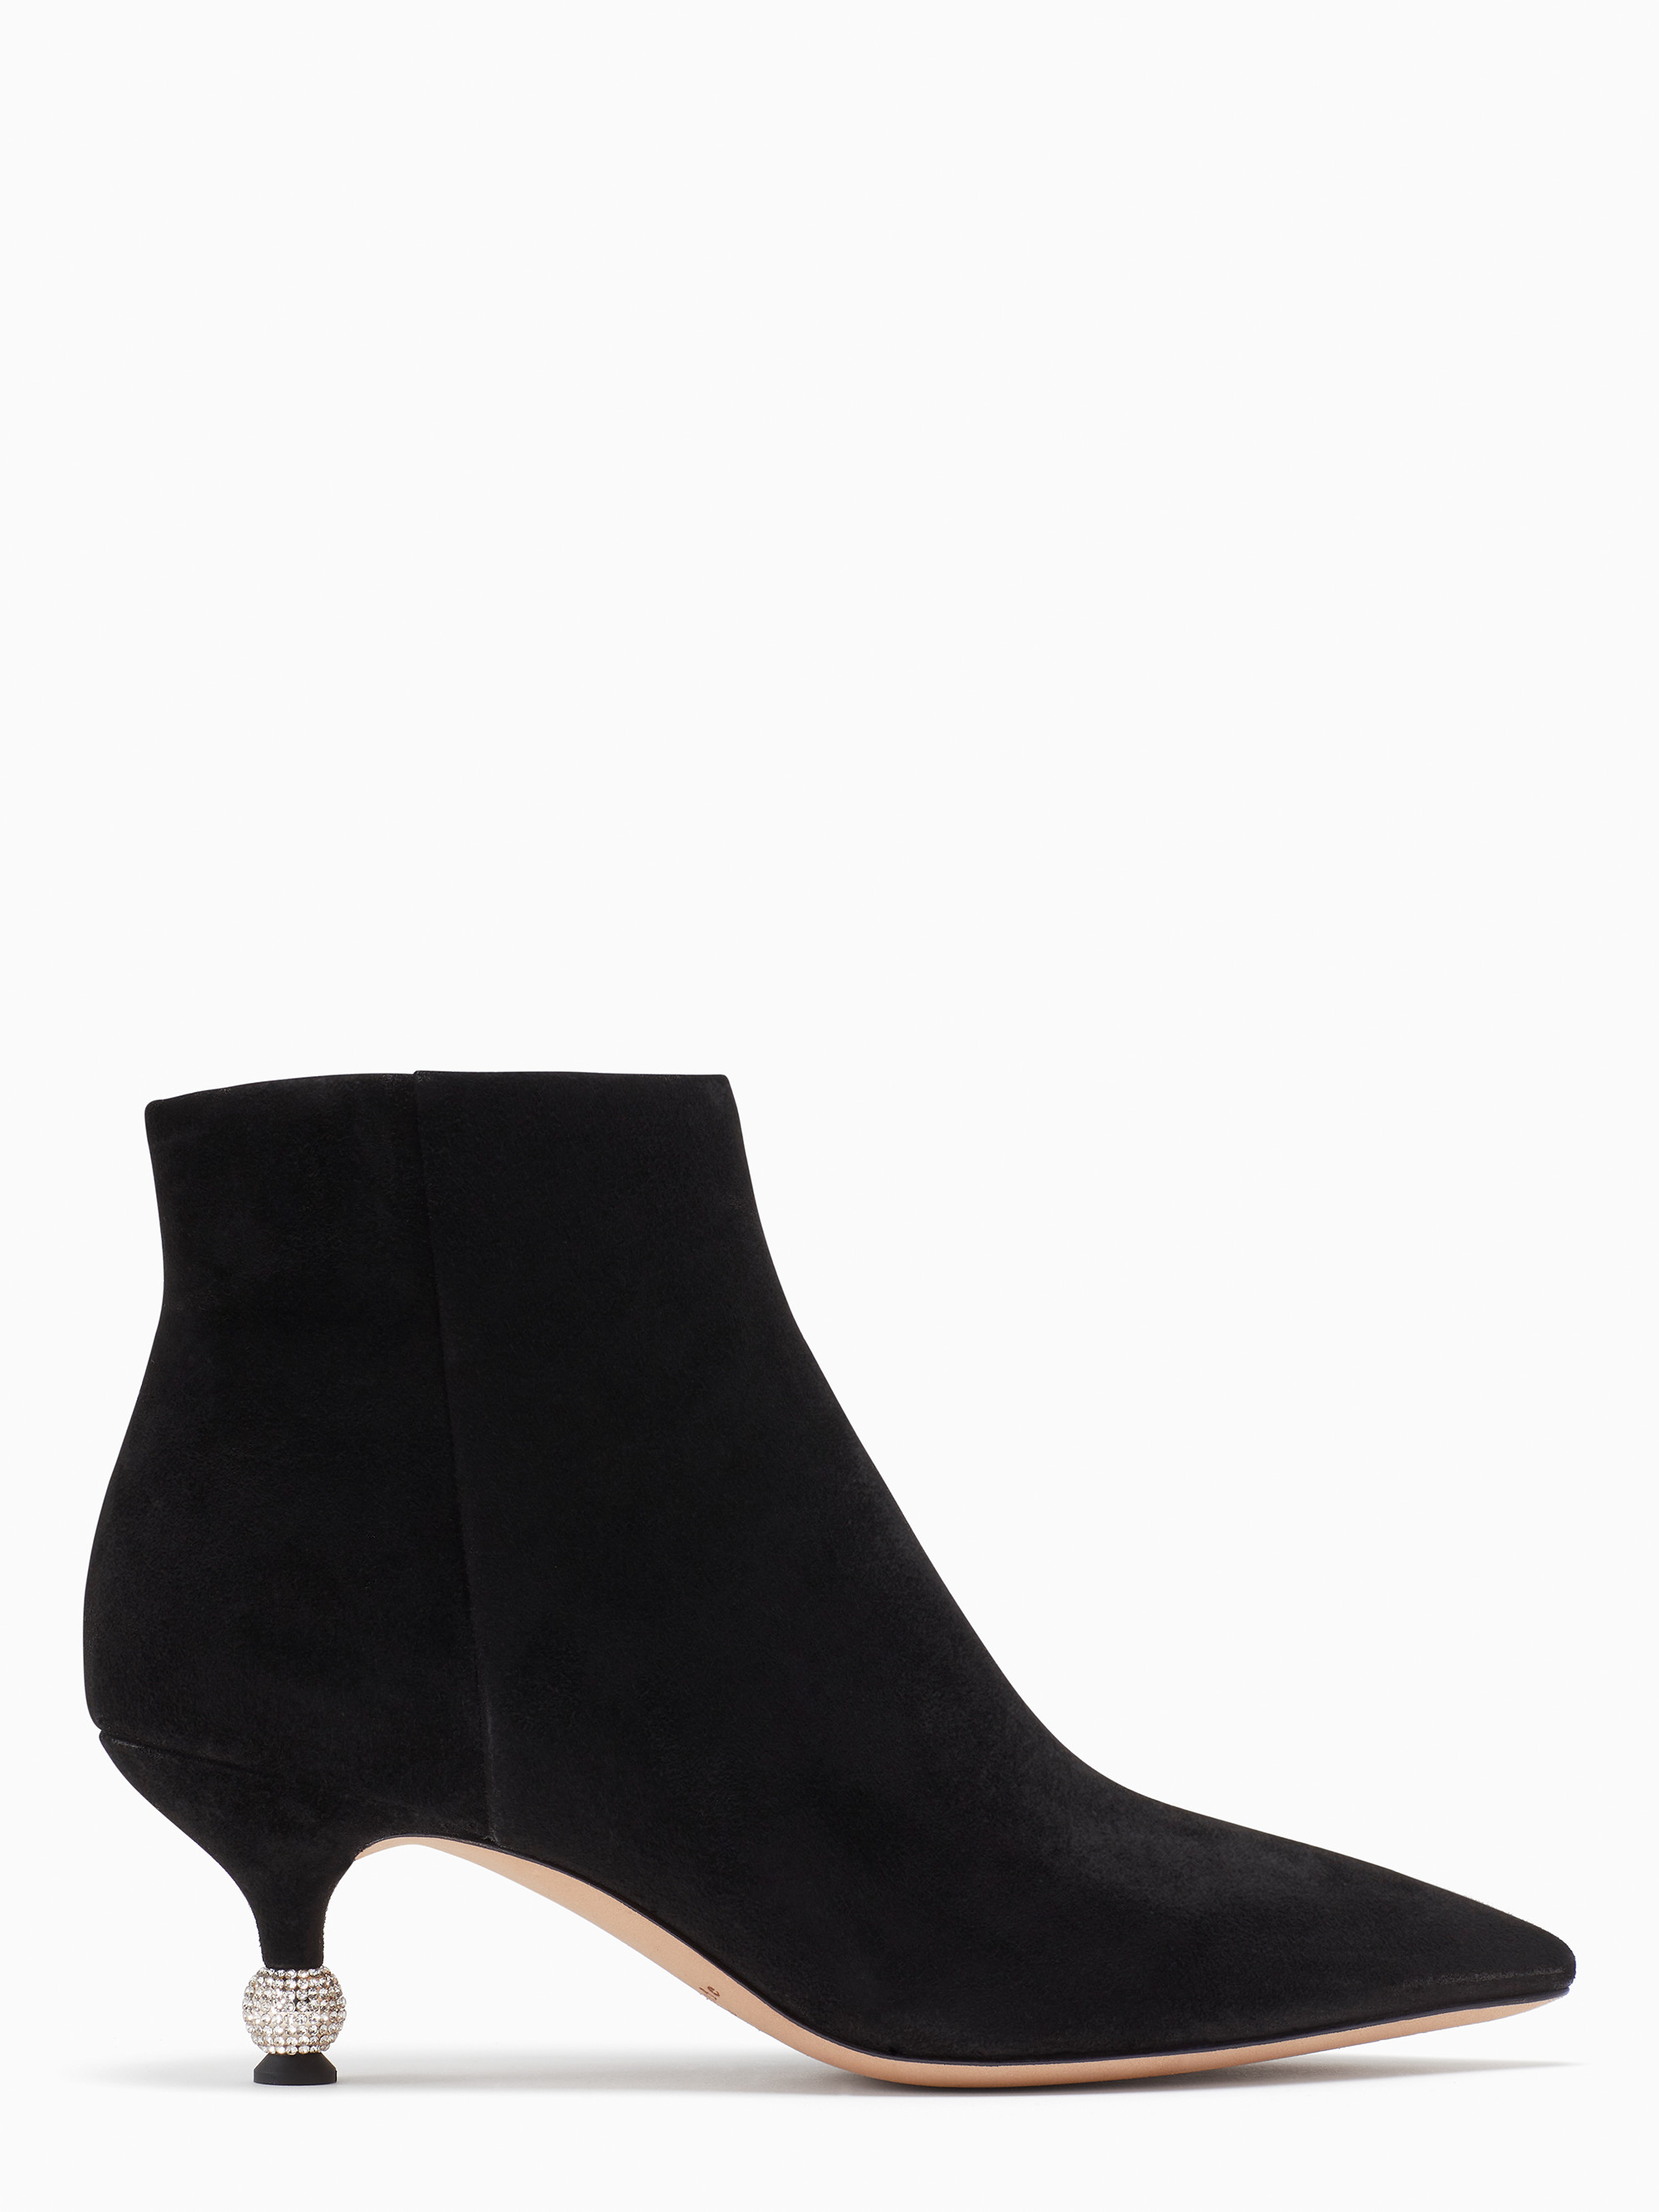 Kate spade chaillot booties